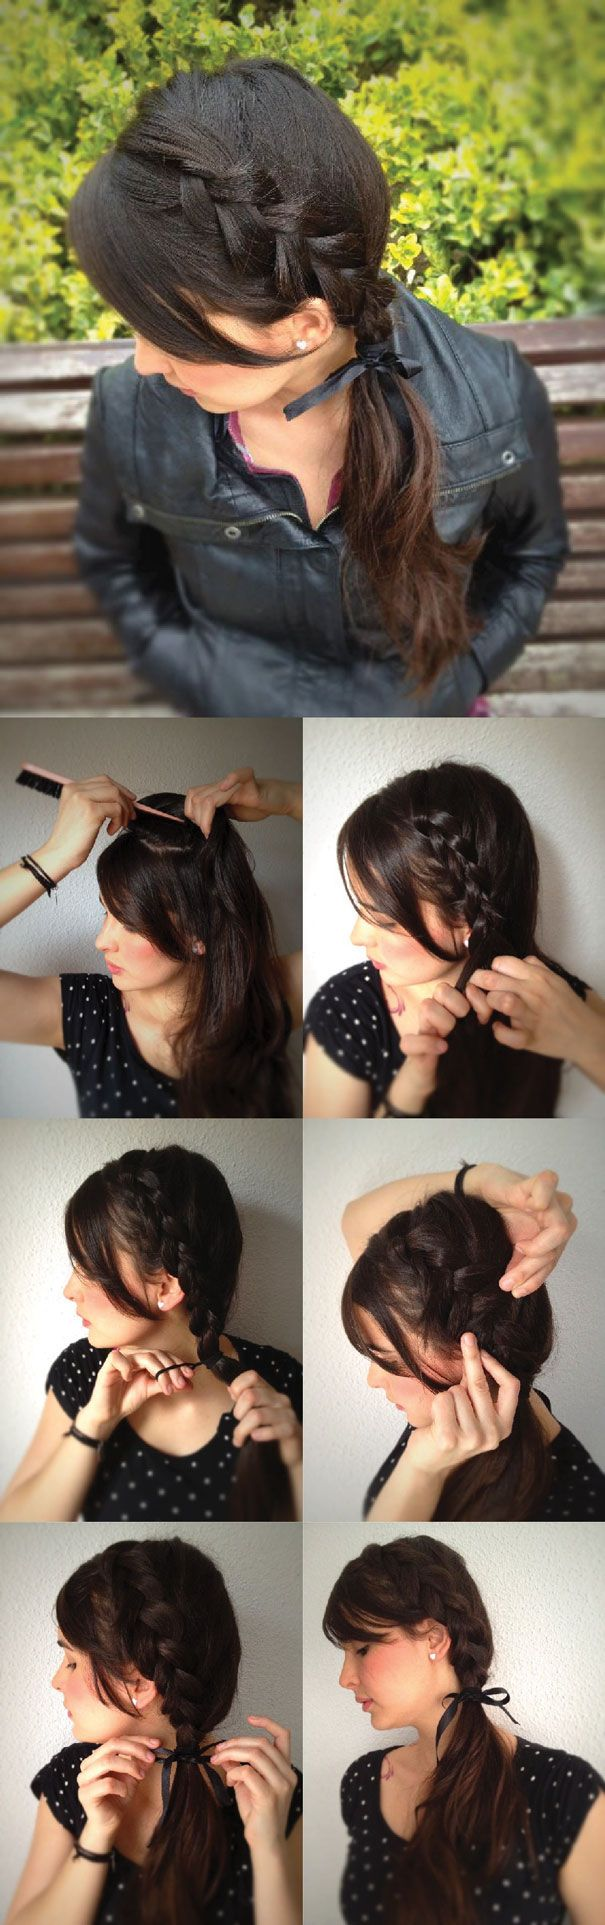 i like that the braid turns into a ponytail - easier and less frayed hairs.